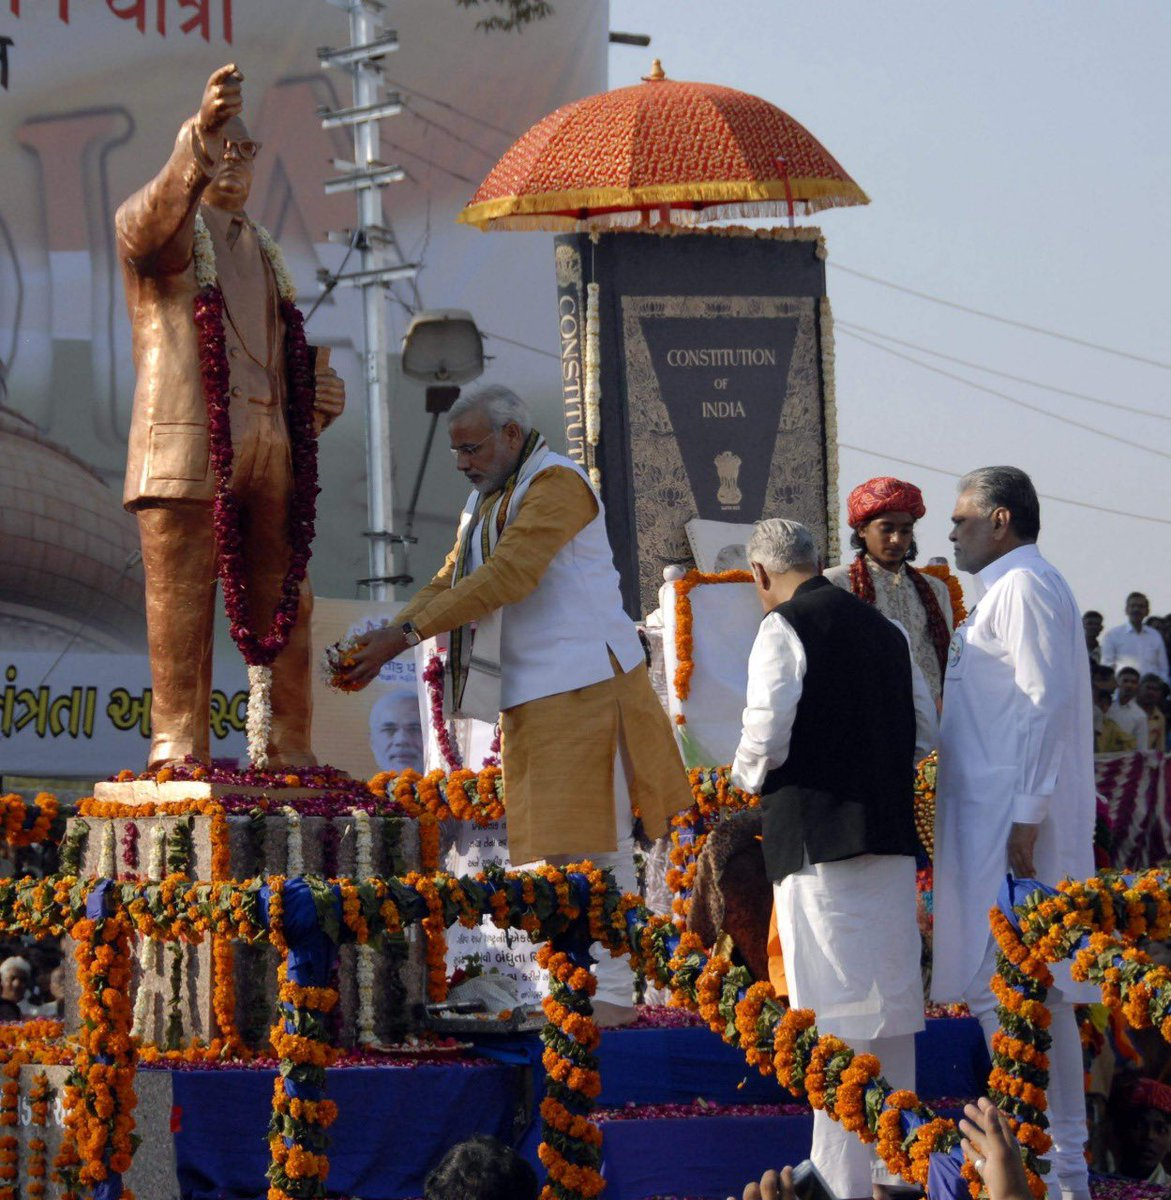 In 2010, to mark 60 years of the Constitution, we organised the Samvidhan Gaurav Yatra in Surendranagar, Gujarat. A replica of the Constitution was placed on an elephant and the procession covered parts of the city. I too walked in that procession. It was a unique tribute!